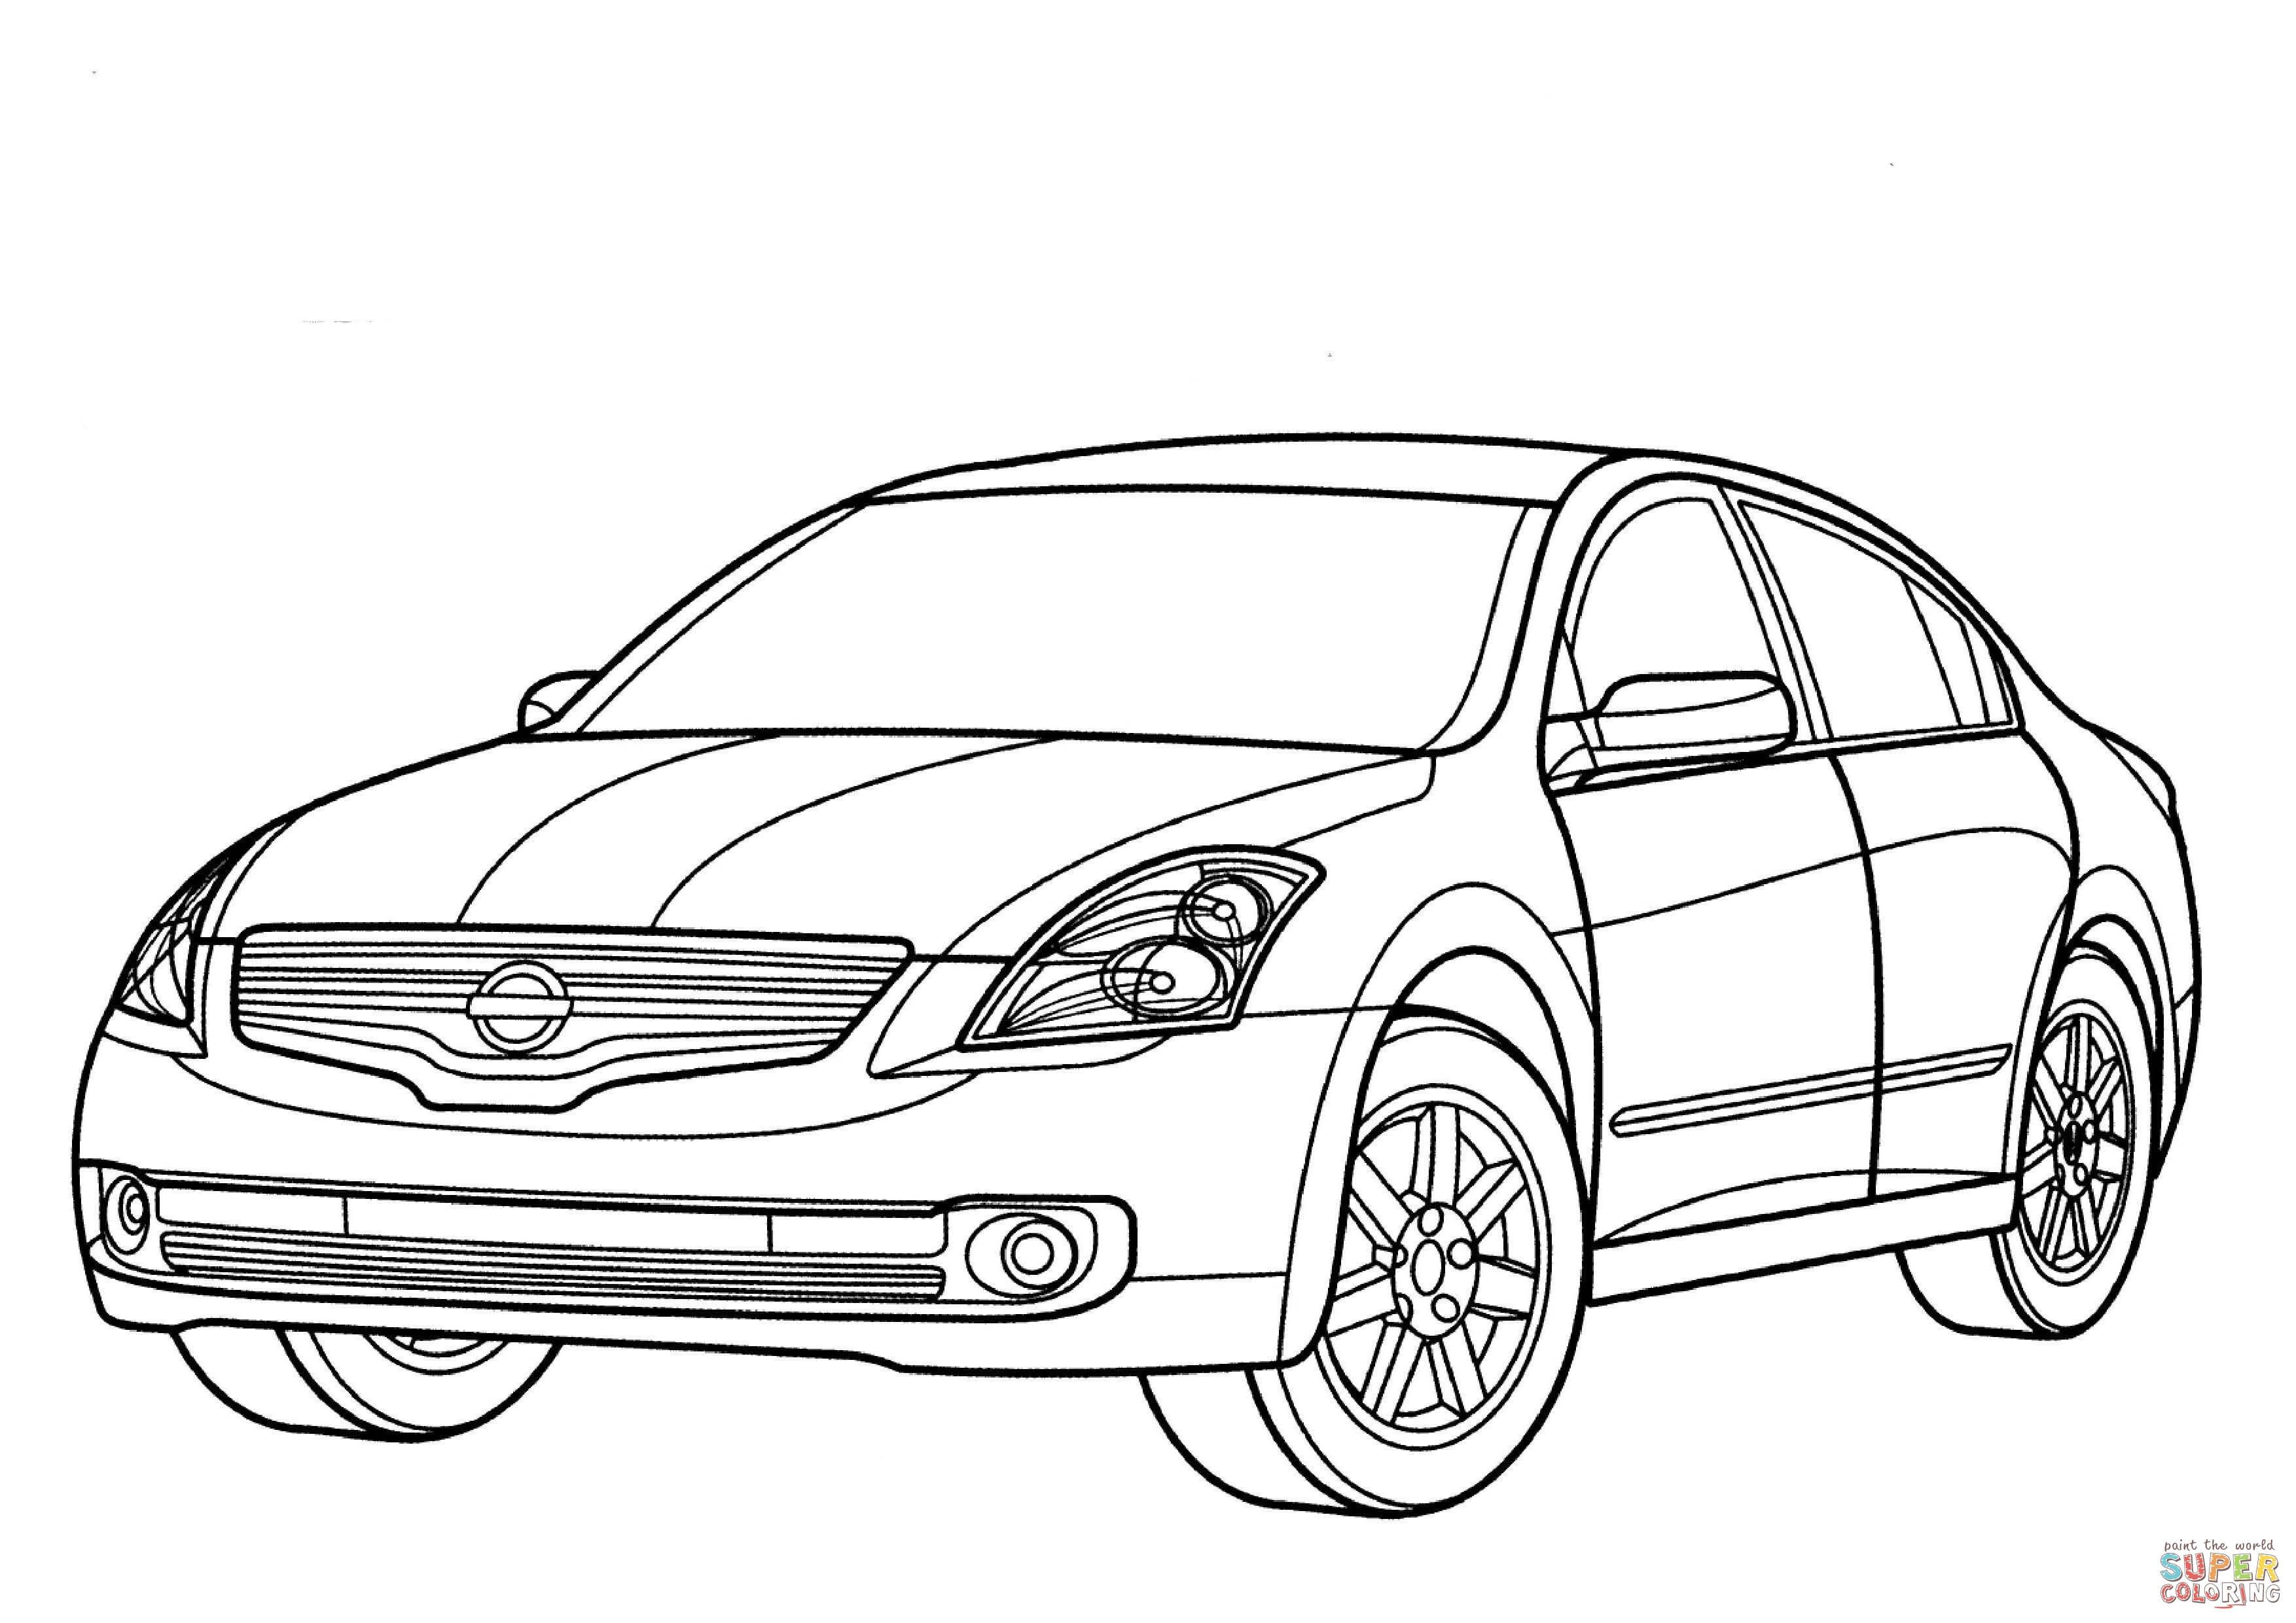 car sketch for coloring car sketch clipart to colour 17cm long this clipart car for coloring sketch